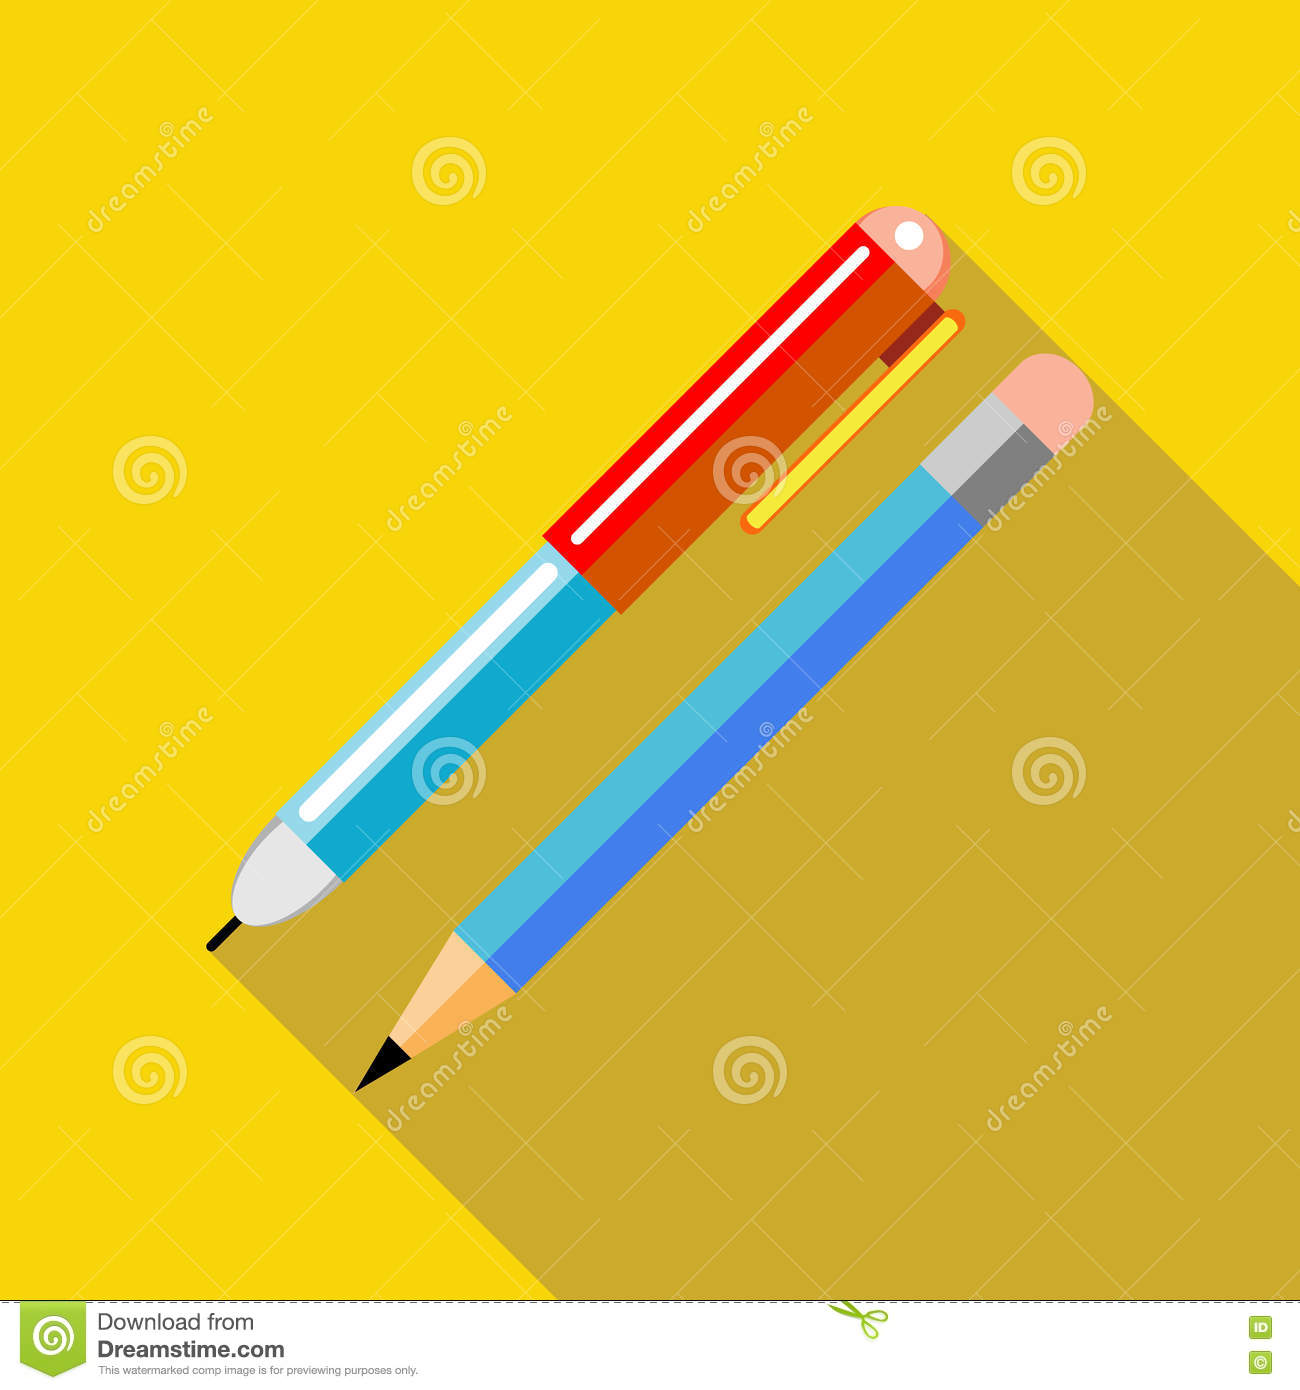 pen and pencil icon in flat style cartoon vector